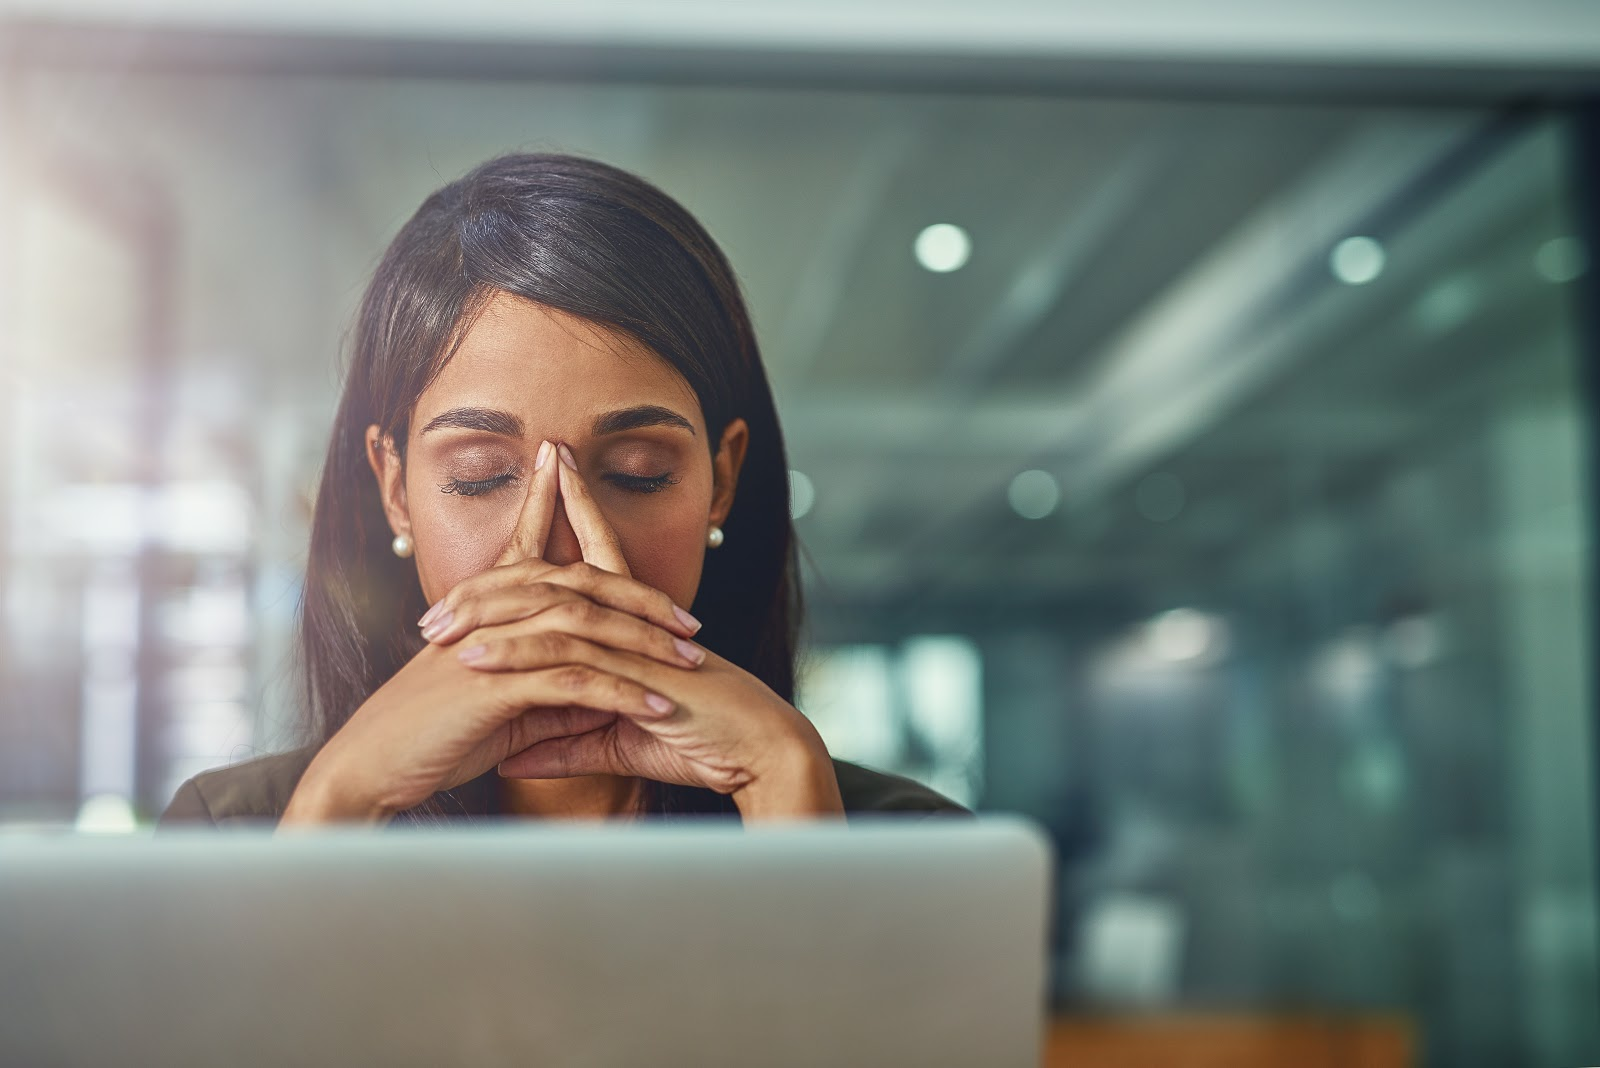 Shot of a young businesswoman looking stressed out while working in an office